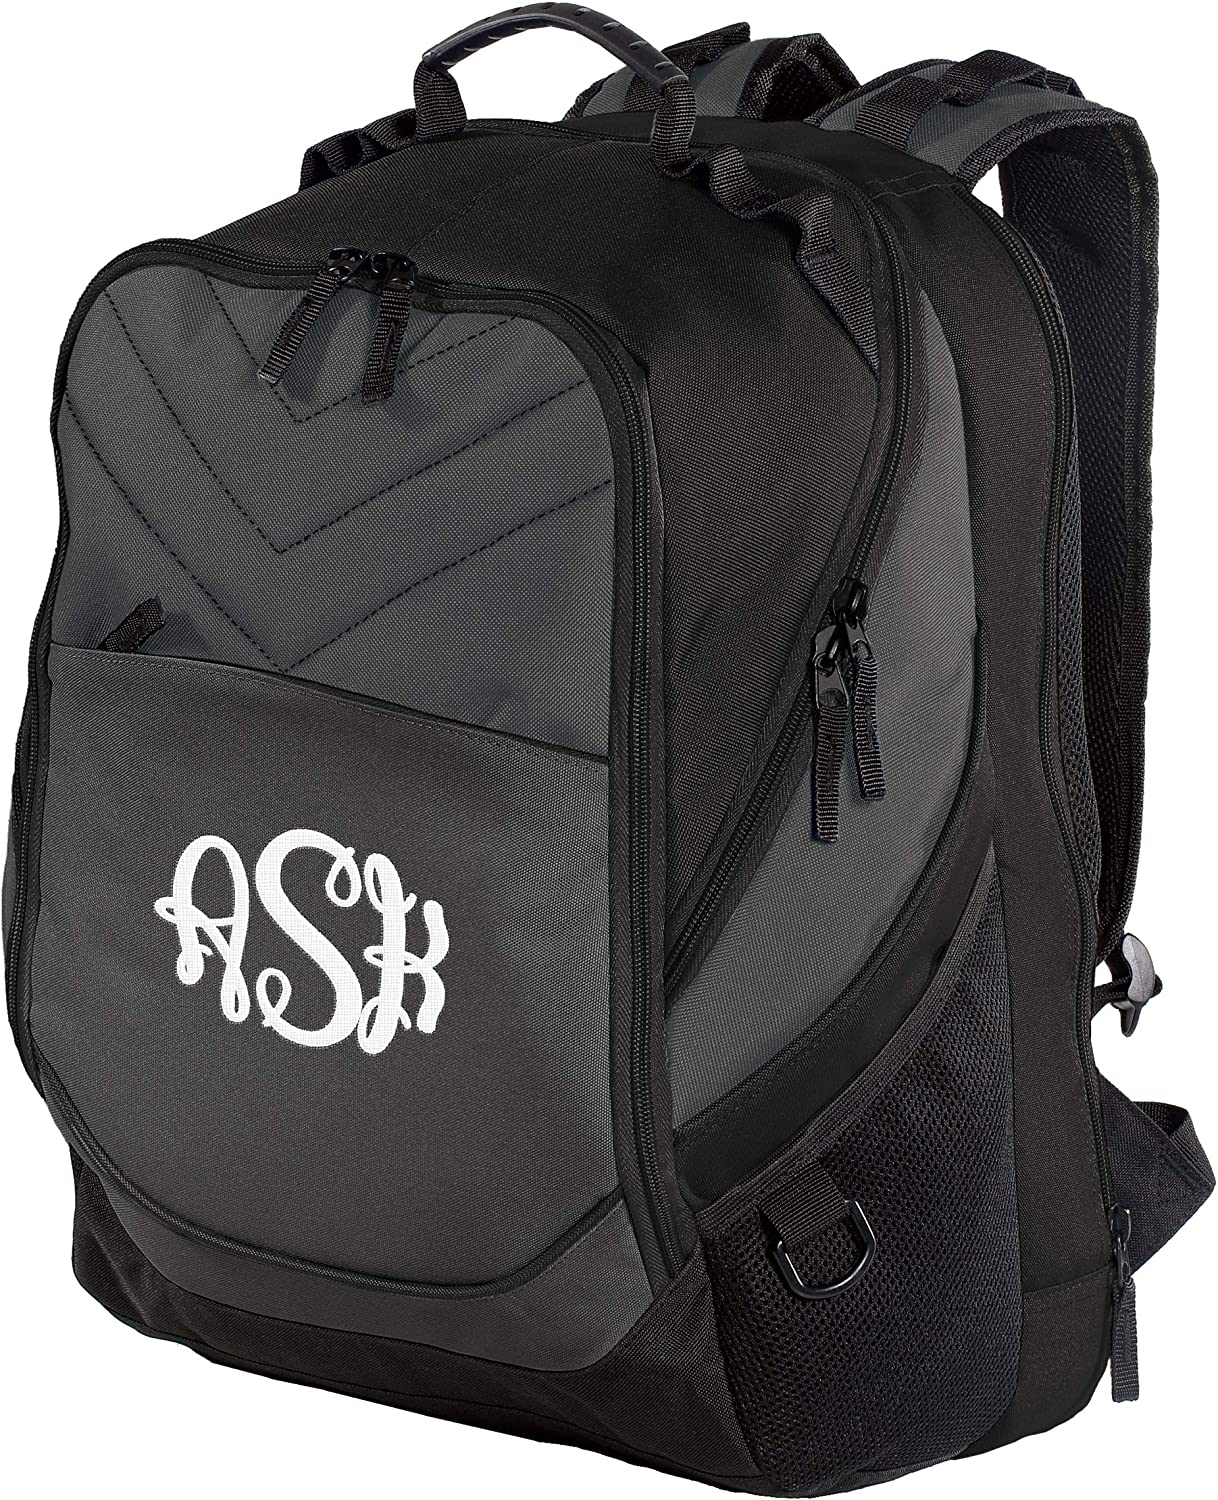 """Personalized Custom Business Computer Backpack - Add Your Monogram (17"""" Laptops)"""